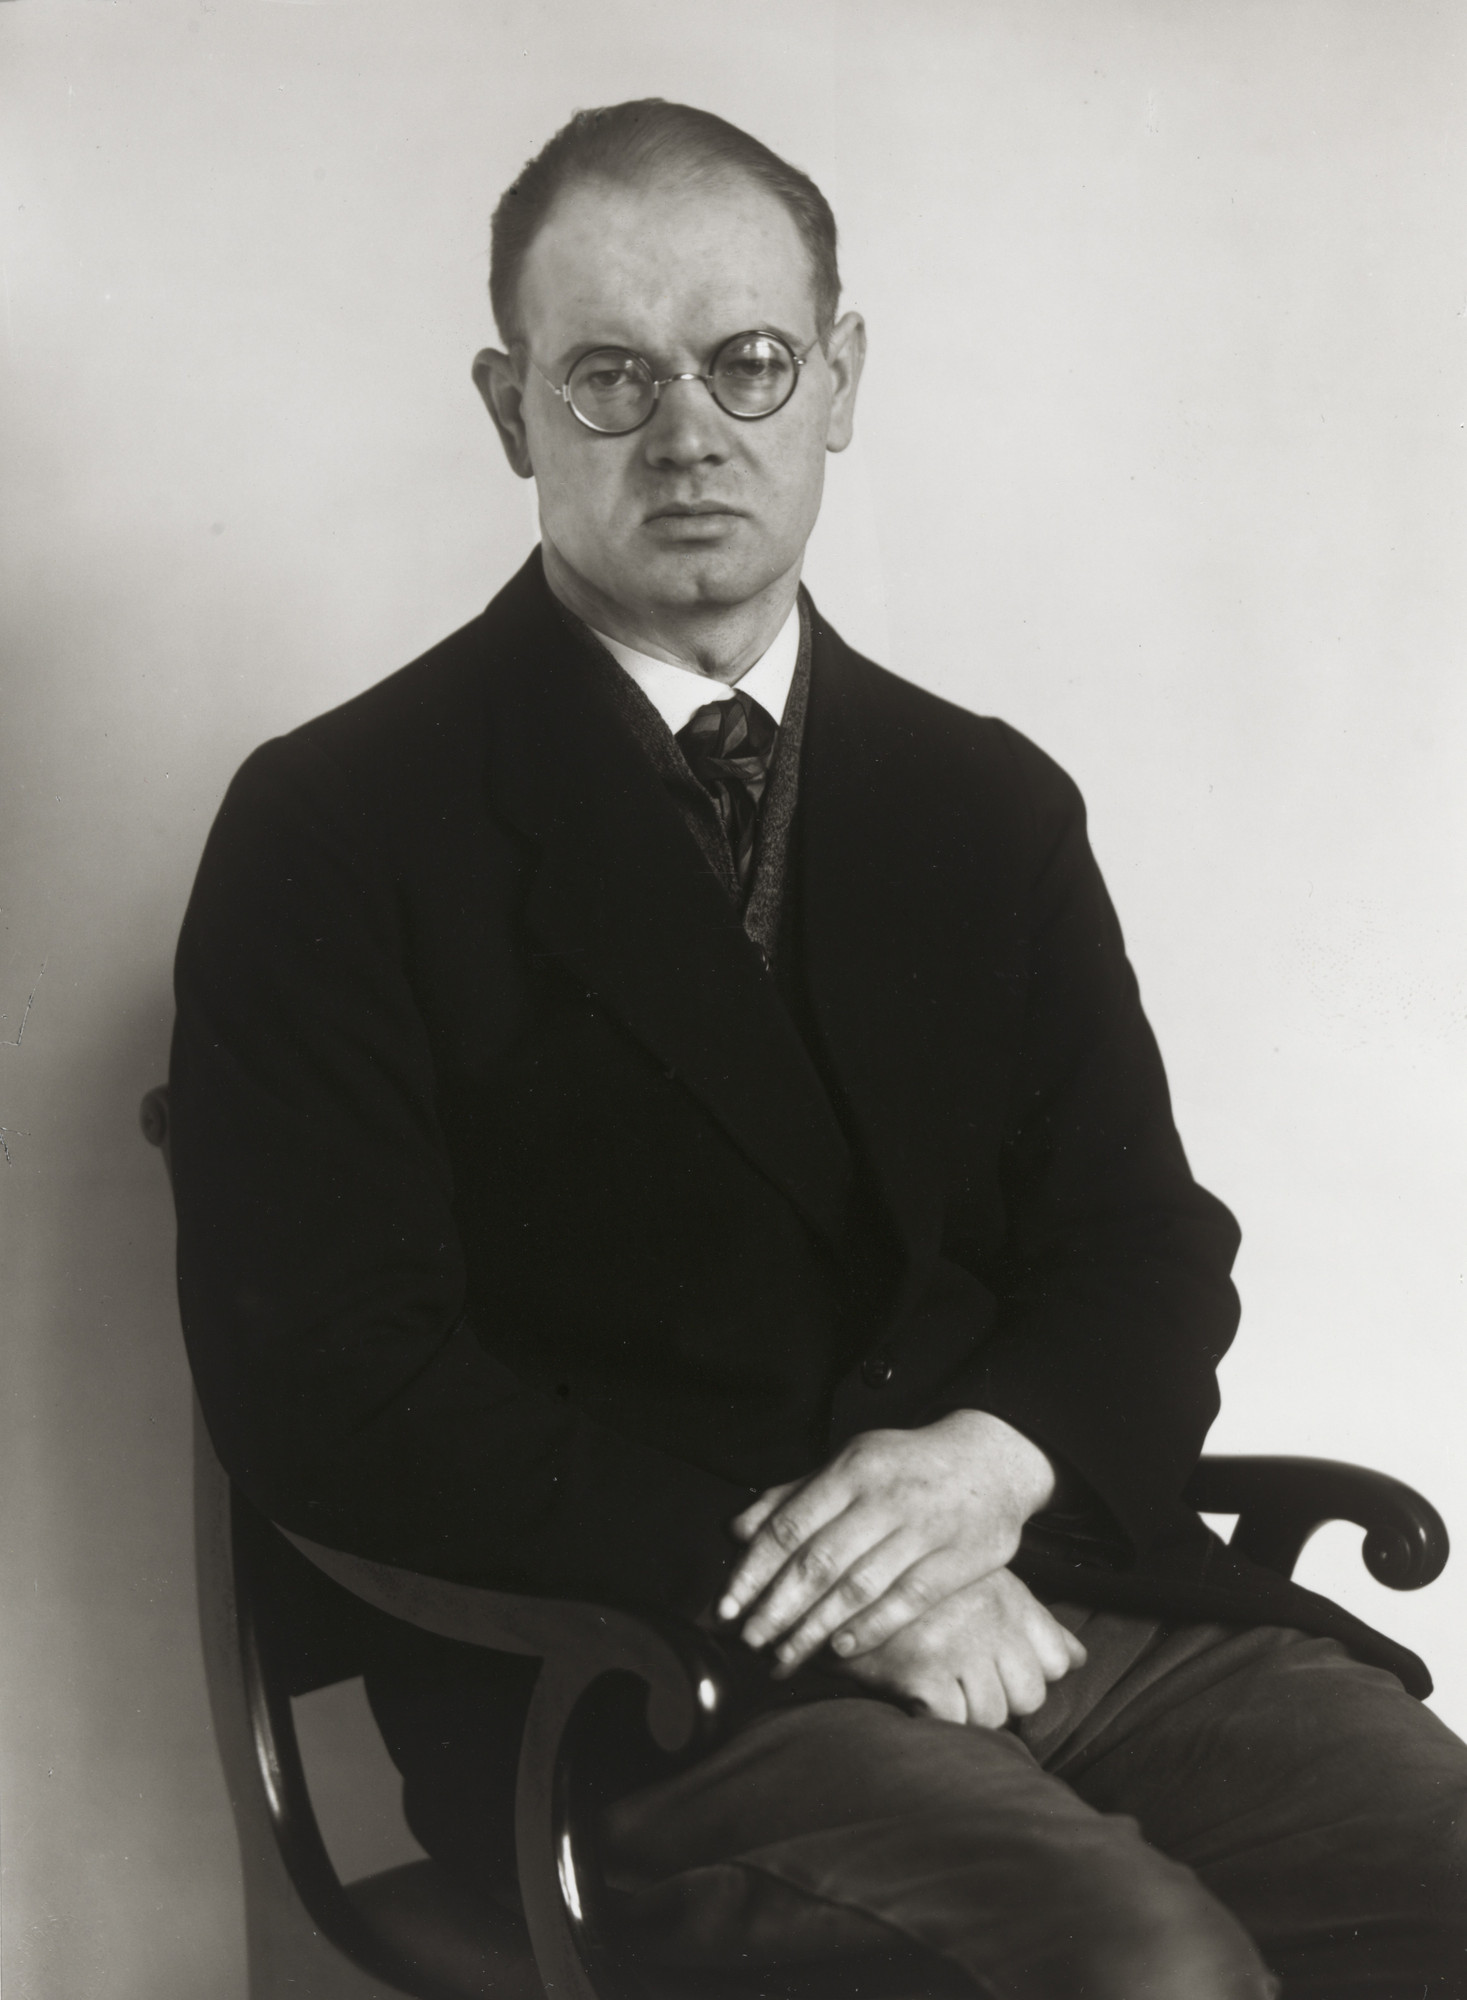 August Sander. Writer and Radio Play Author [Eduard Reinacher]. 1924